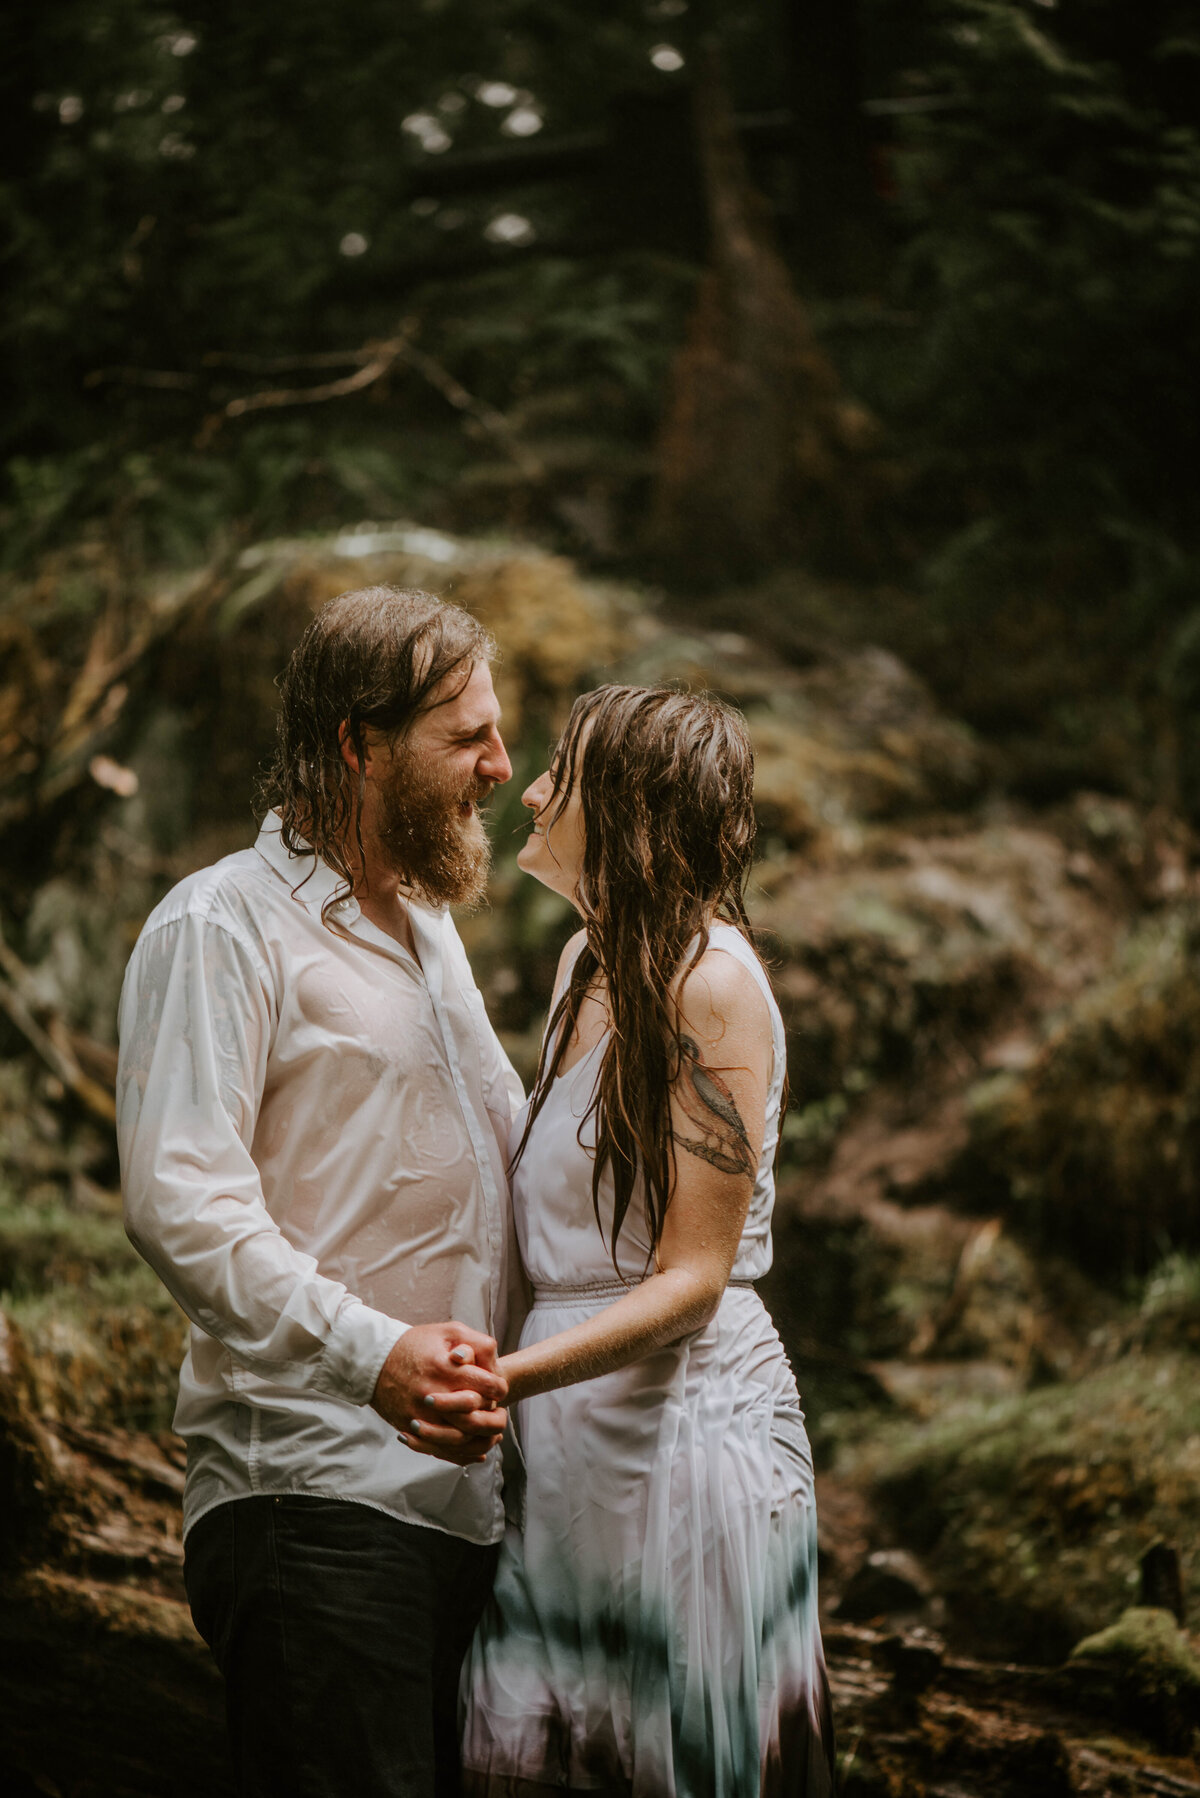 sahalie-falls-summer-oregon-photoshoot-adventure-photographer-bend-couple-forest-outfits-elopement-wedding8647